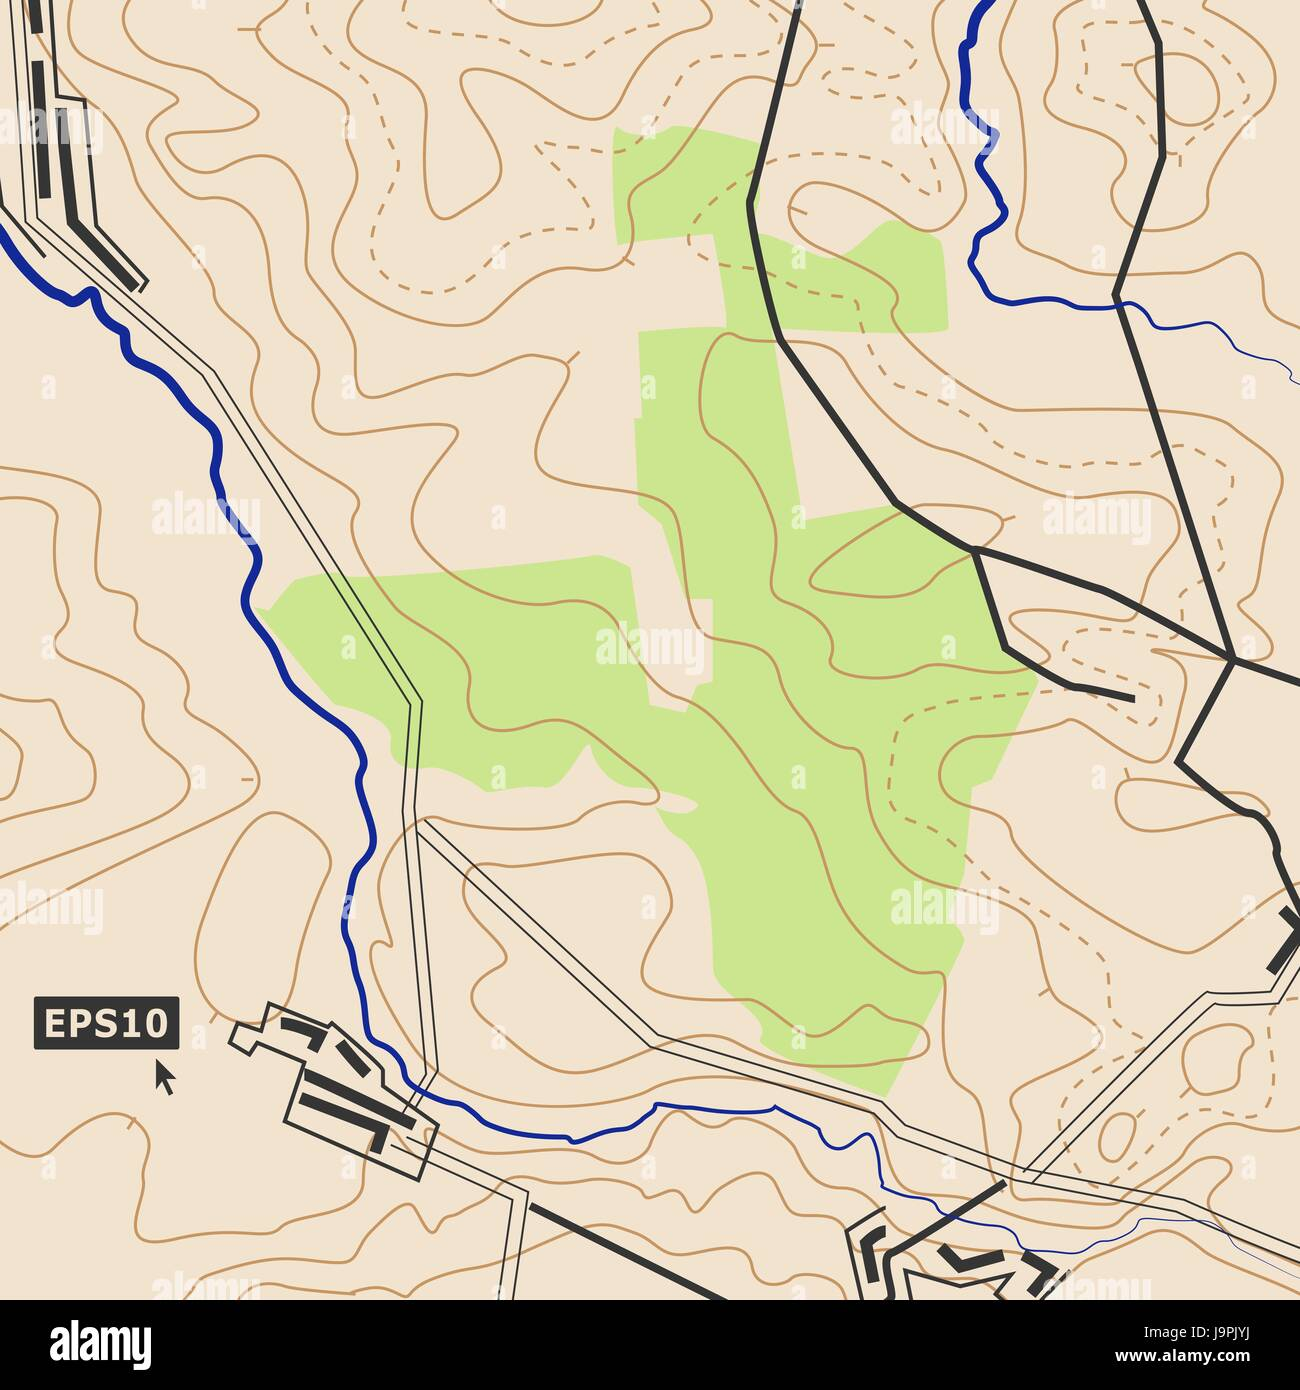 Topographic Map Background Concept With Roads Forests Settlements